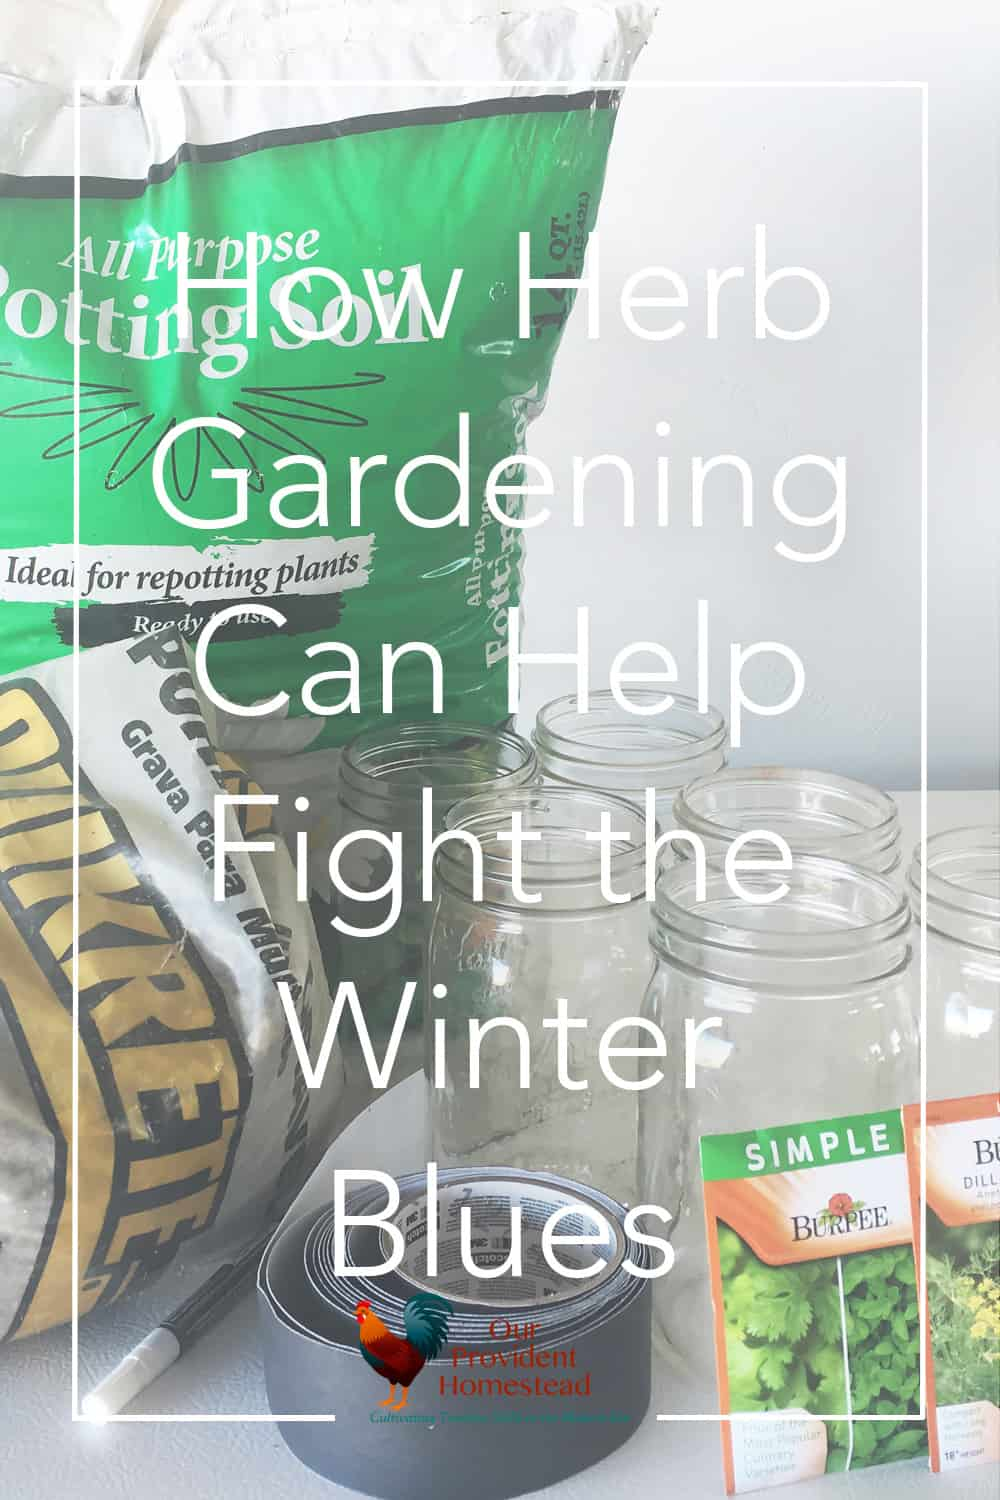 Do you have the winter blues? Herb gardening can help fight the winter blues and let you enjoy gardening again while you wait for spring. Herb Gardening | Winter Blues | Growing Herbs